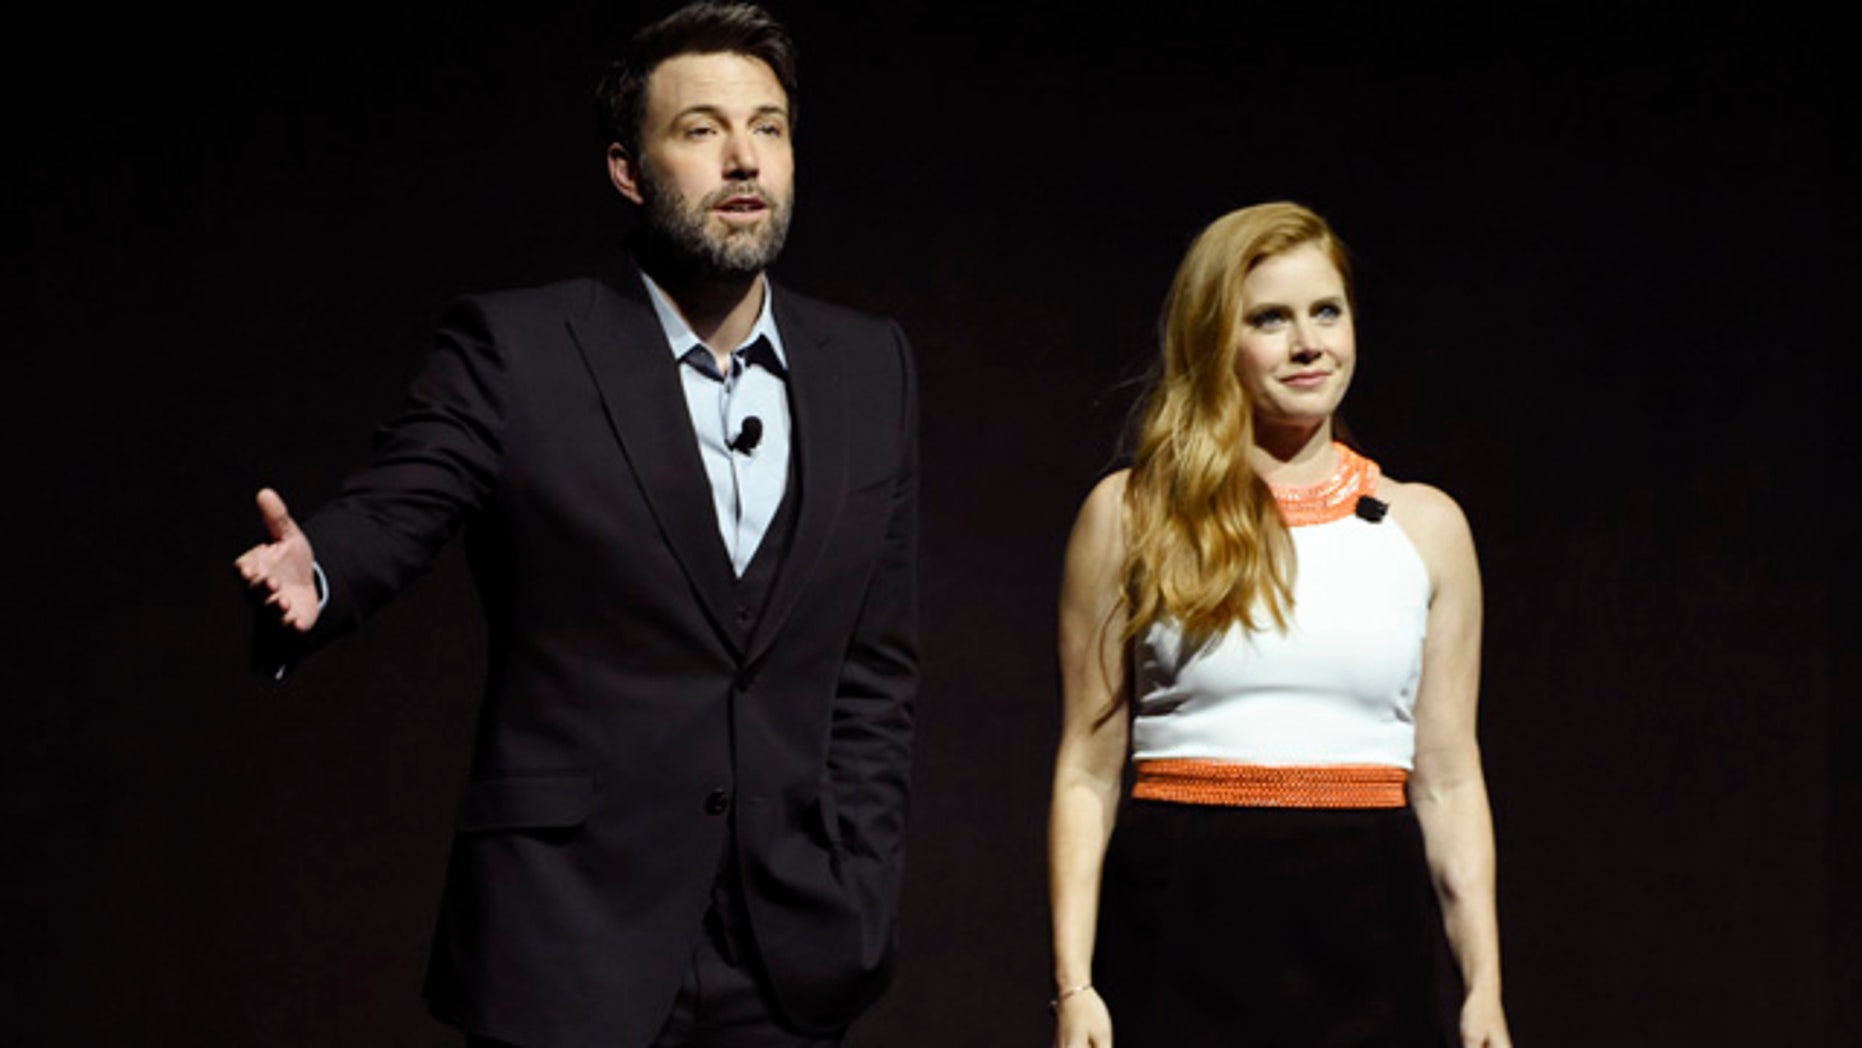 April 12, 2016: Ben Affleck and Amy Adams, cast members in the film 'Batman v Superman: Dawn of Justice,' address the audience during the Warner Bros. presentation at CinemaCon 2016, the official convention of the National Association of Theatre Owners (NATO), at Caesars Palace in Las Vegas. (Photo by Chris Pizzello/Invision/AP)